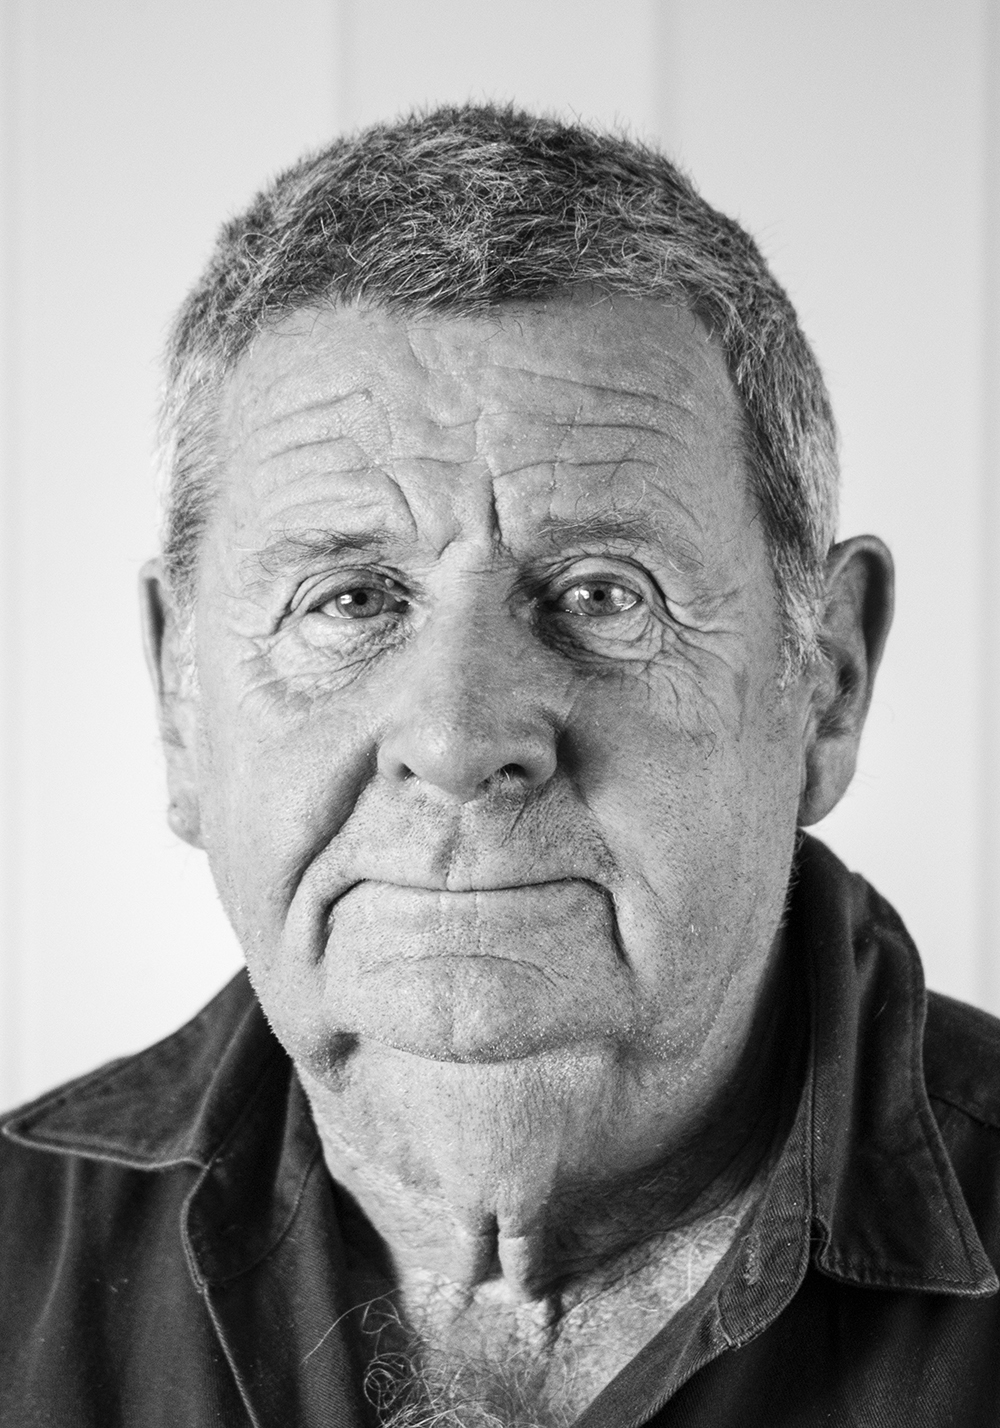 Bob Lubcke (farmer) - photographed by his daughter Karyn